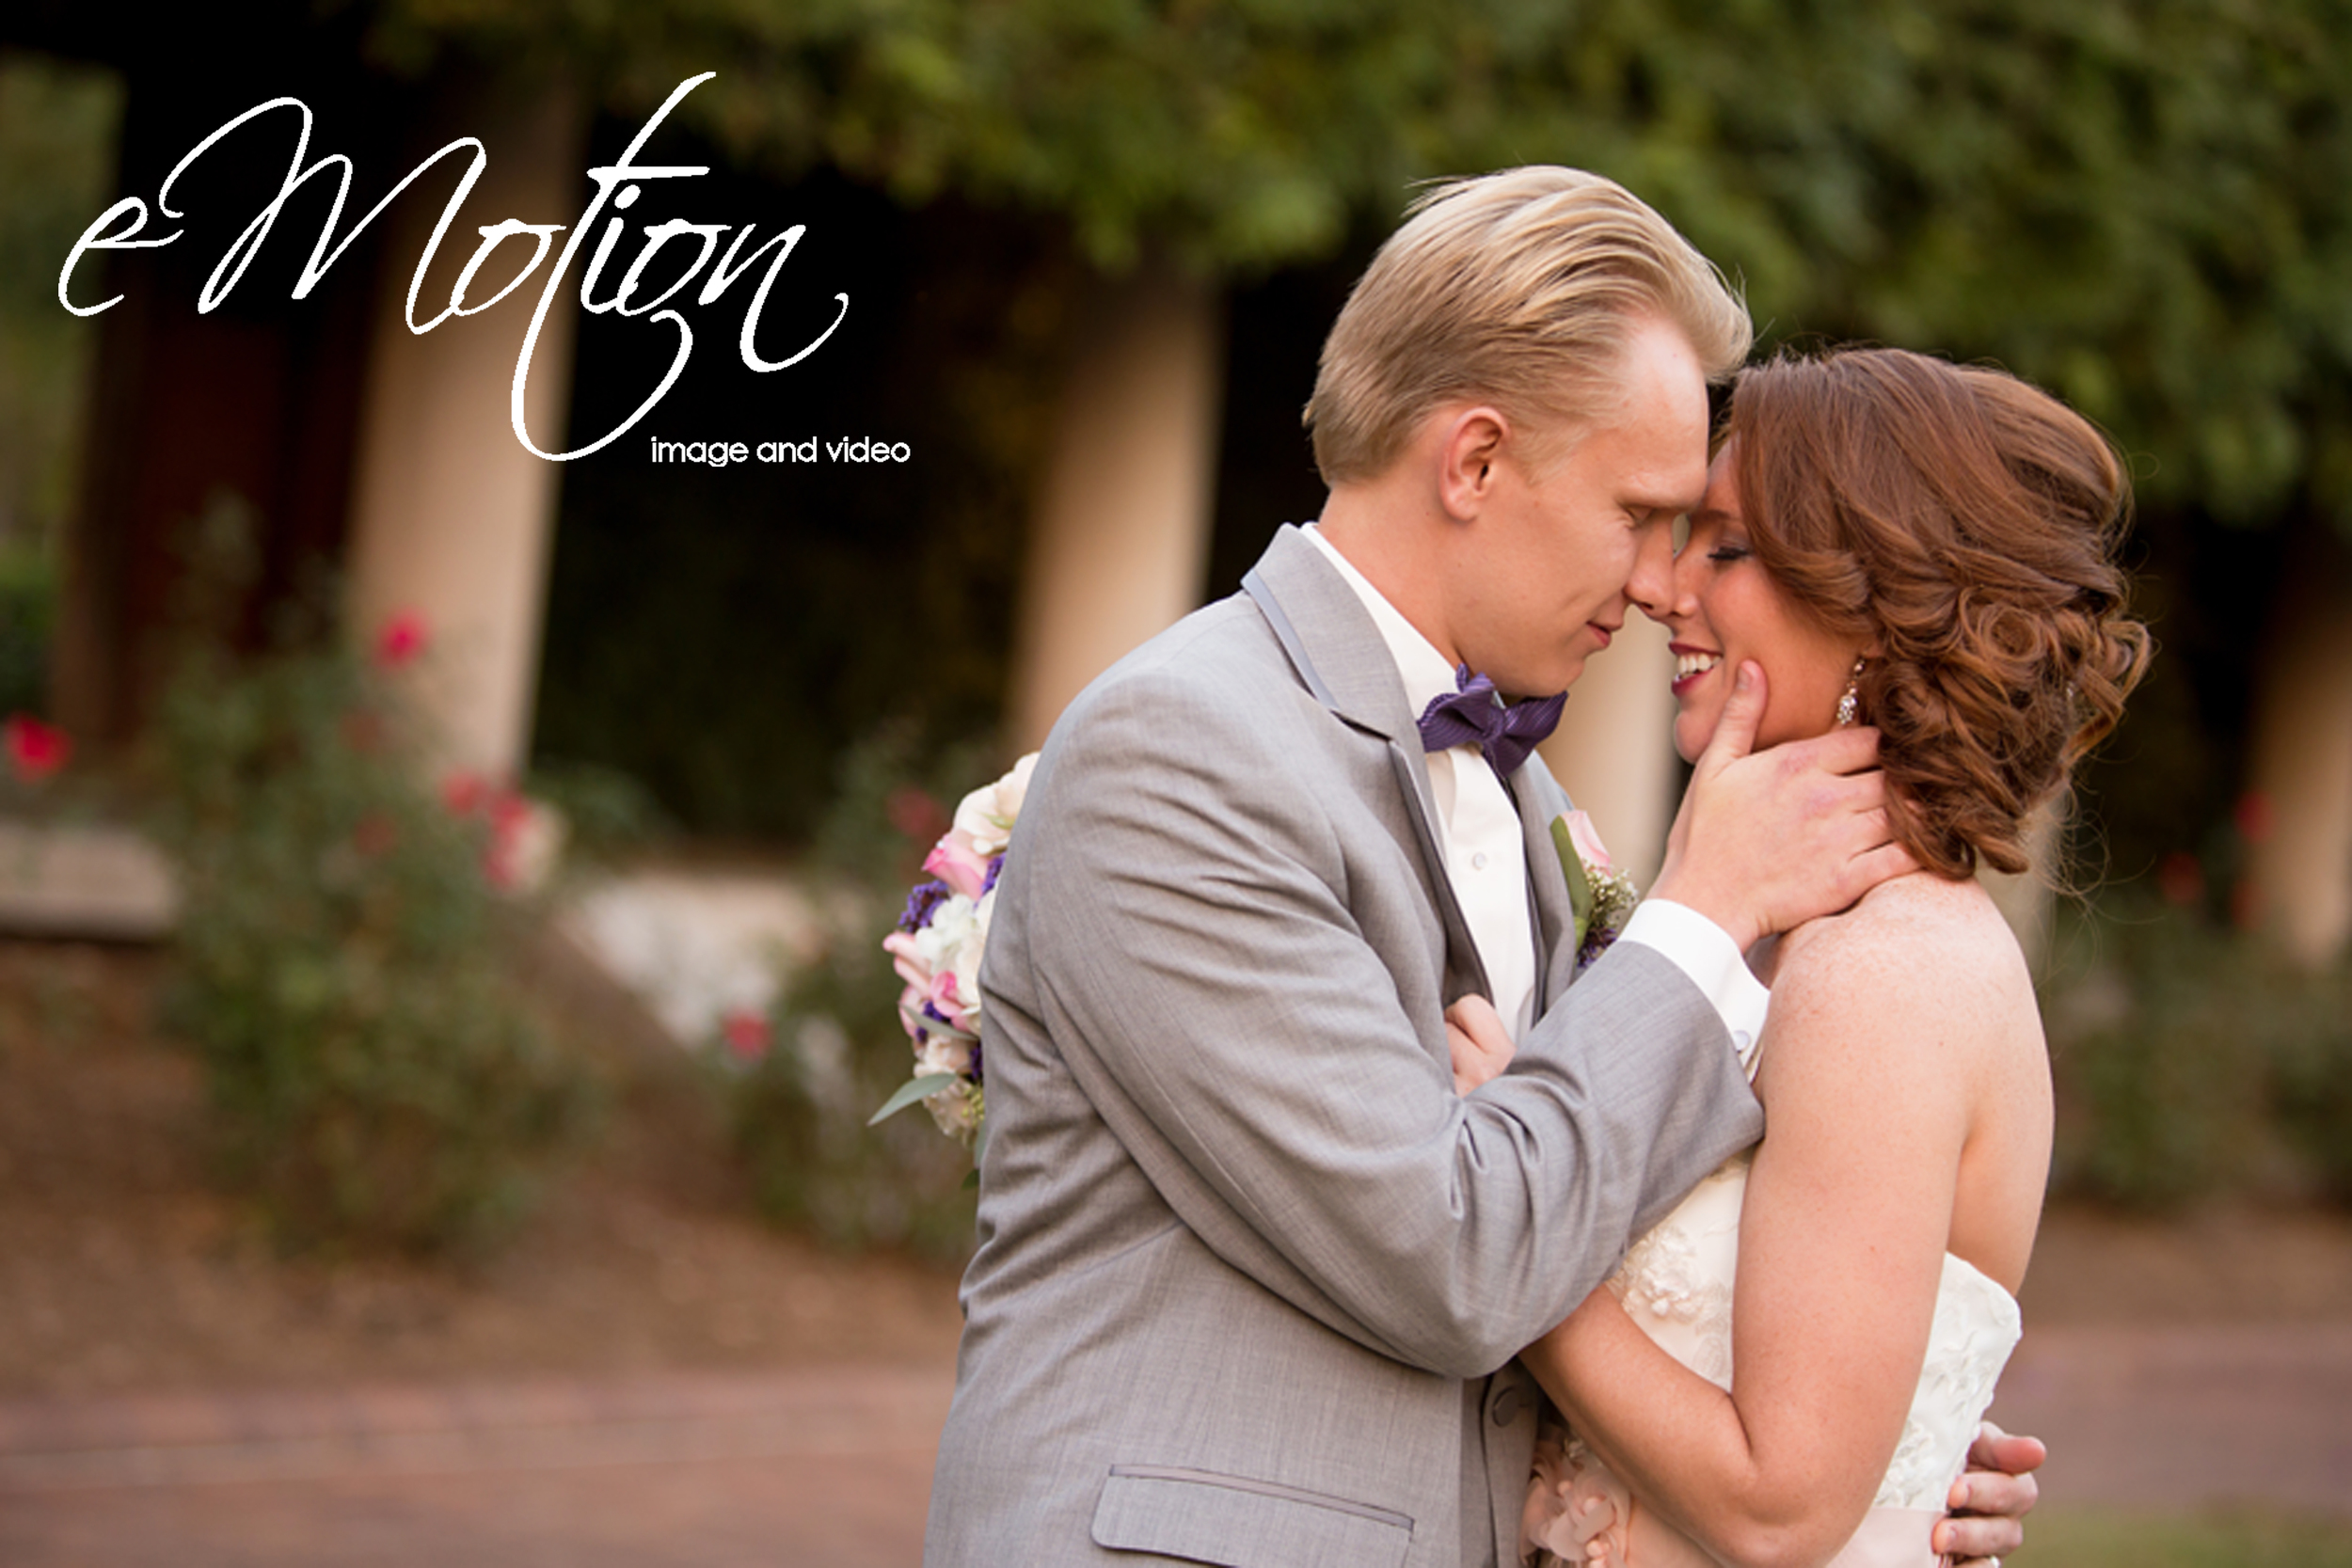 Gardencourt wedding ceremony and reception by Louisville wedding photographer Megan Biddle with eMotion image and video.